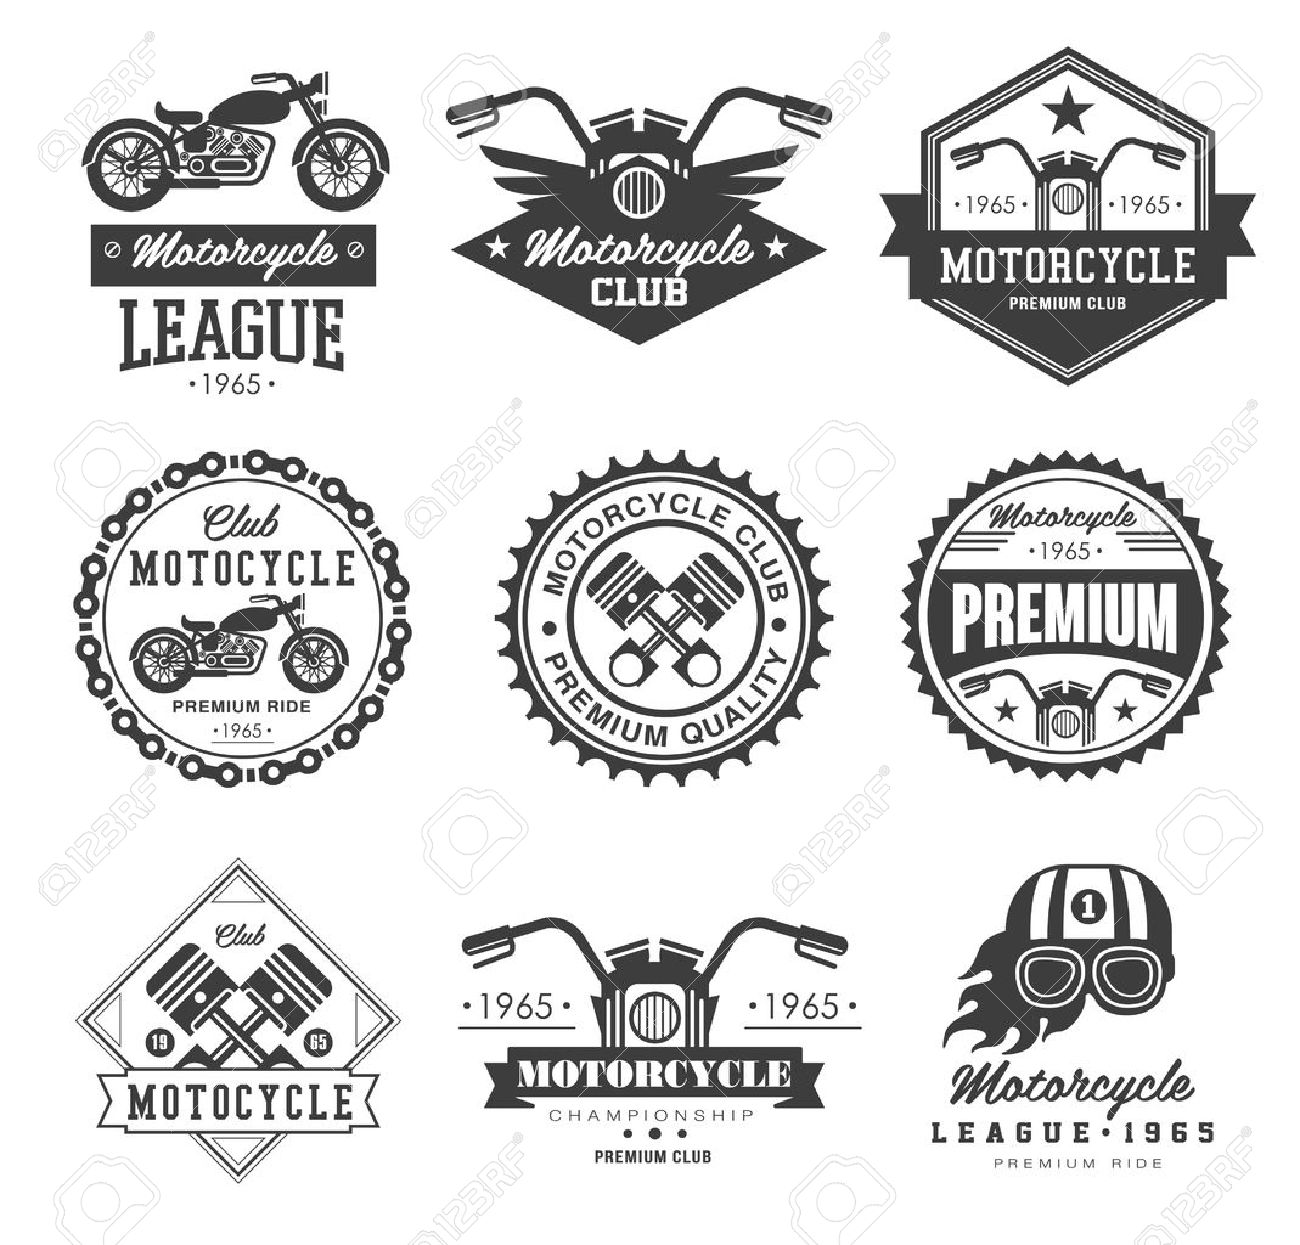 Badges, emblems Motorcycle Collections vector logo set - 42726396